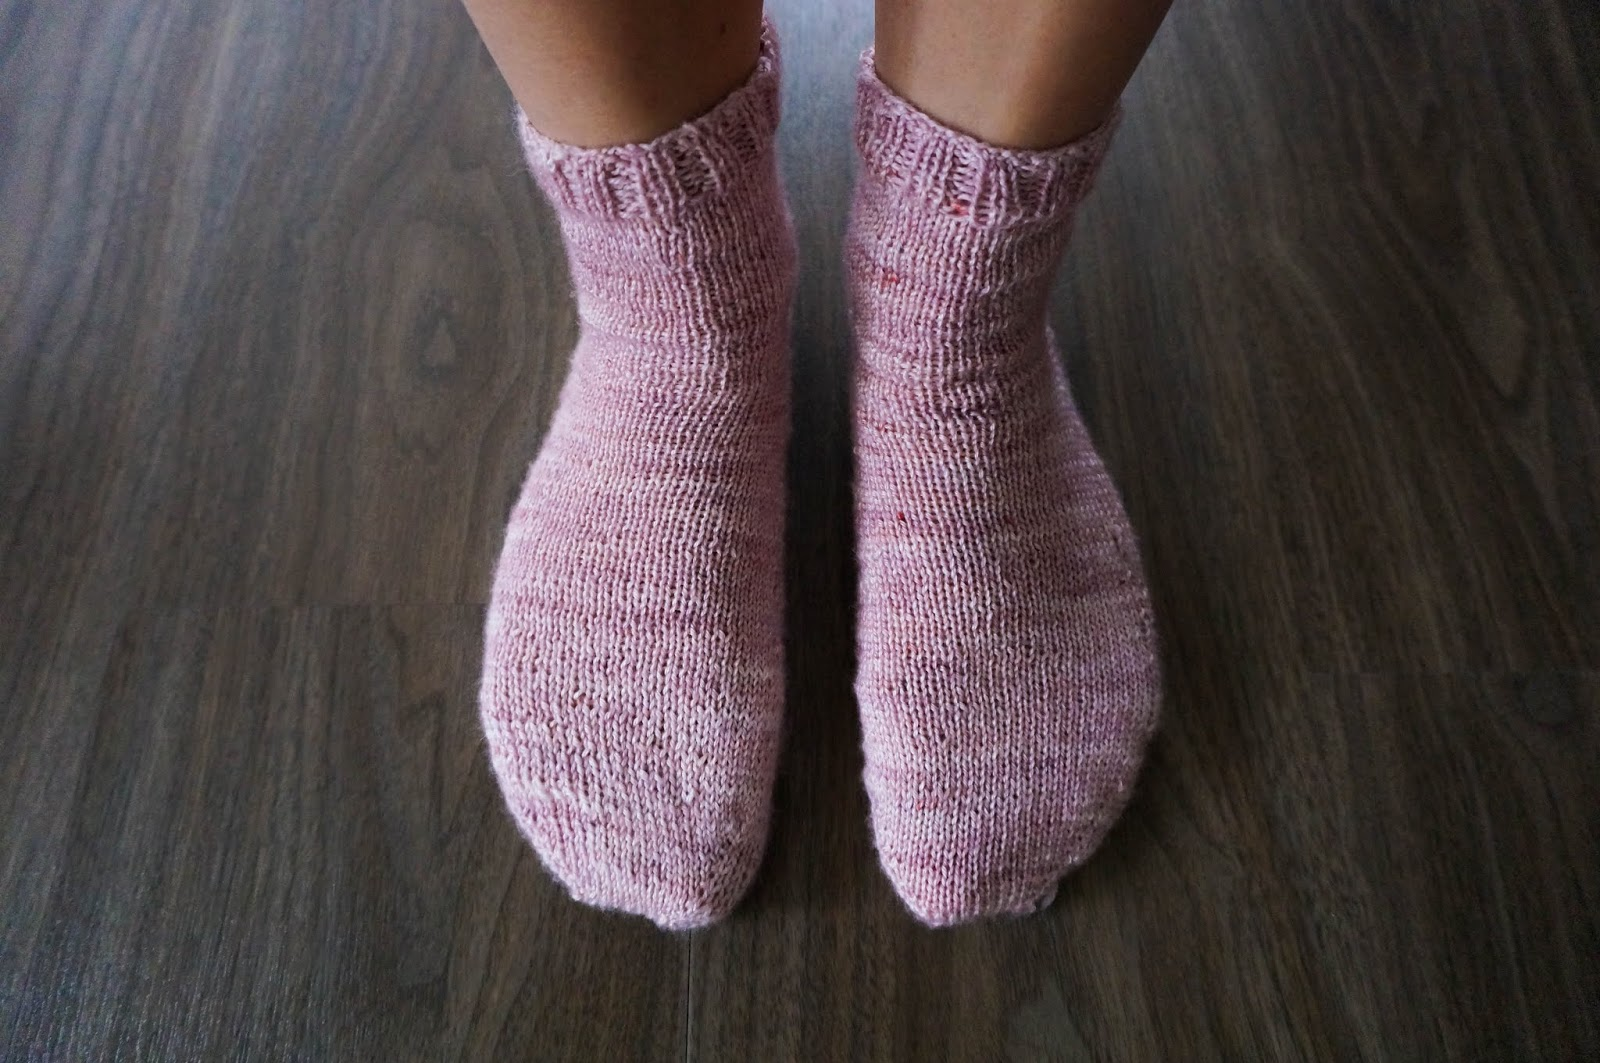 Craftsy class review: My First Toe-Up Socks with Susan B. Anderson